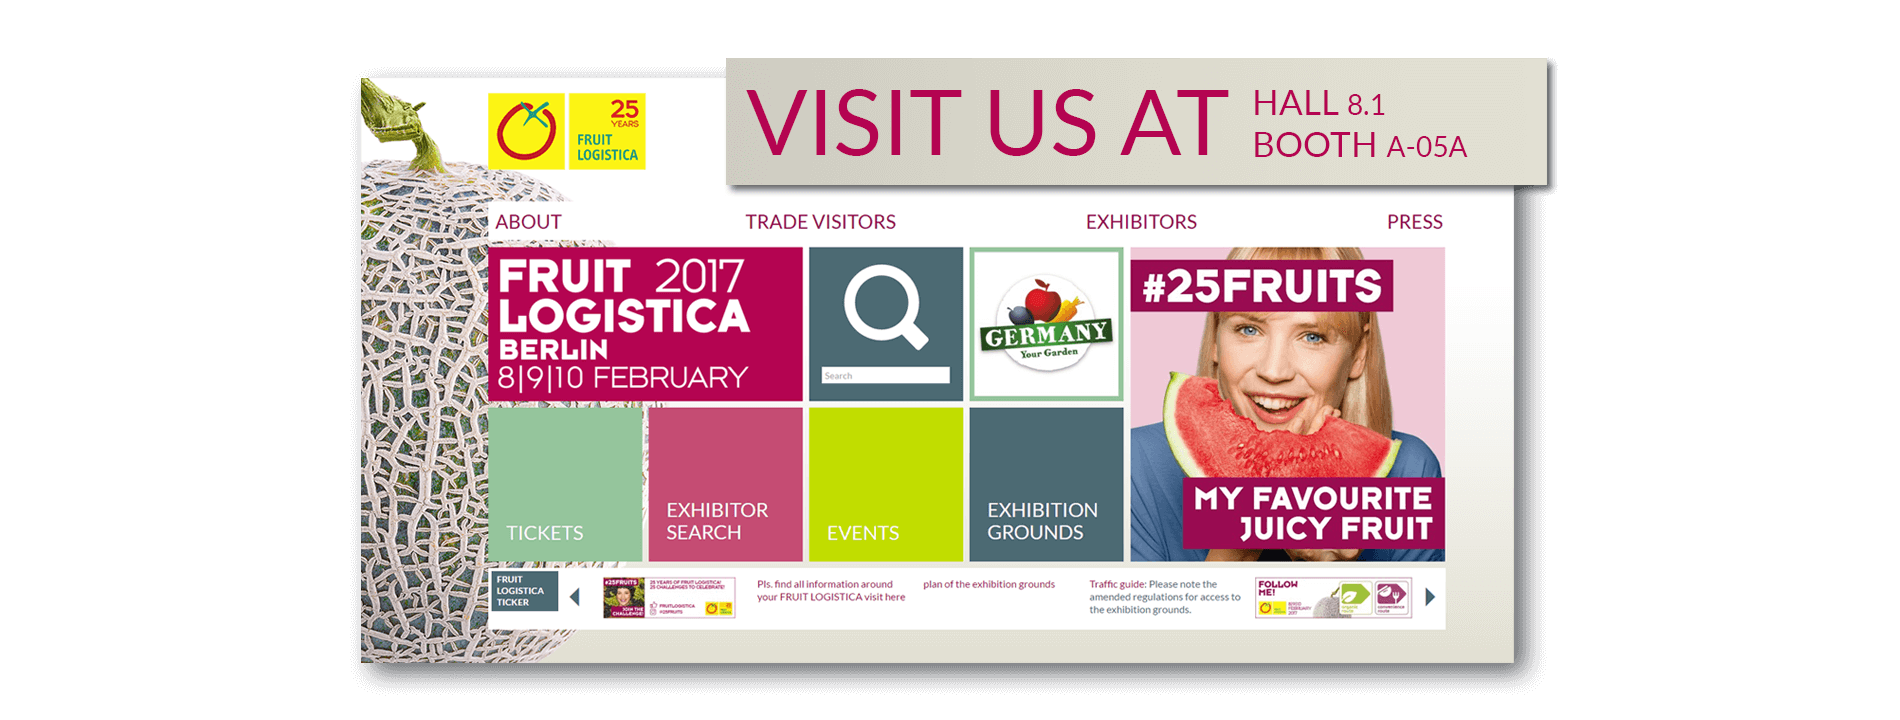 Bogaerts Greenhouse Logistics - Fruit Logistica 2017